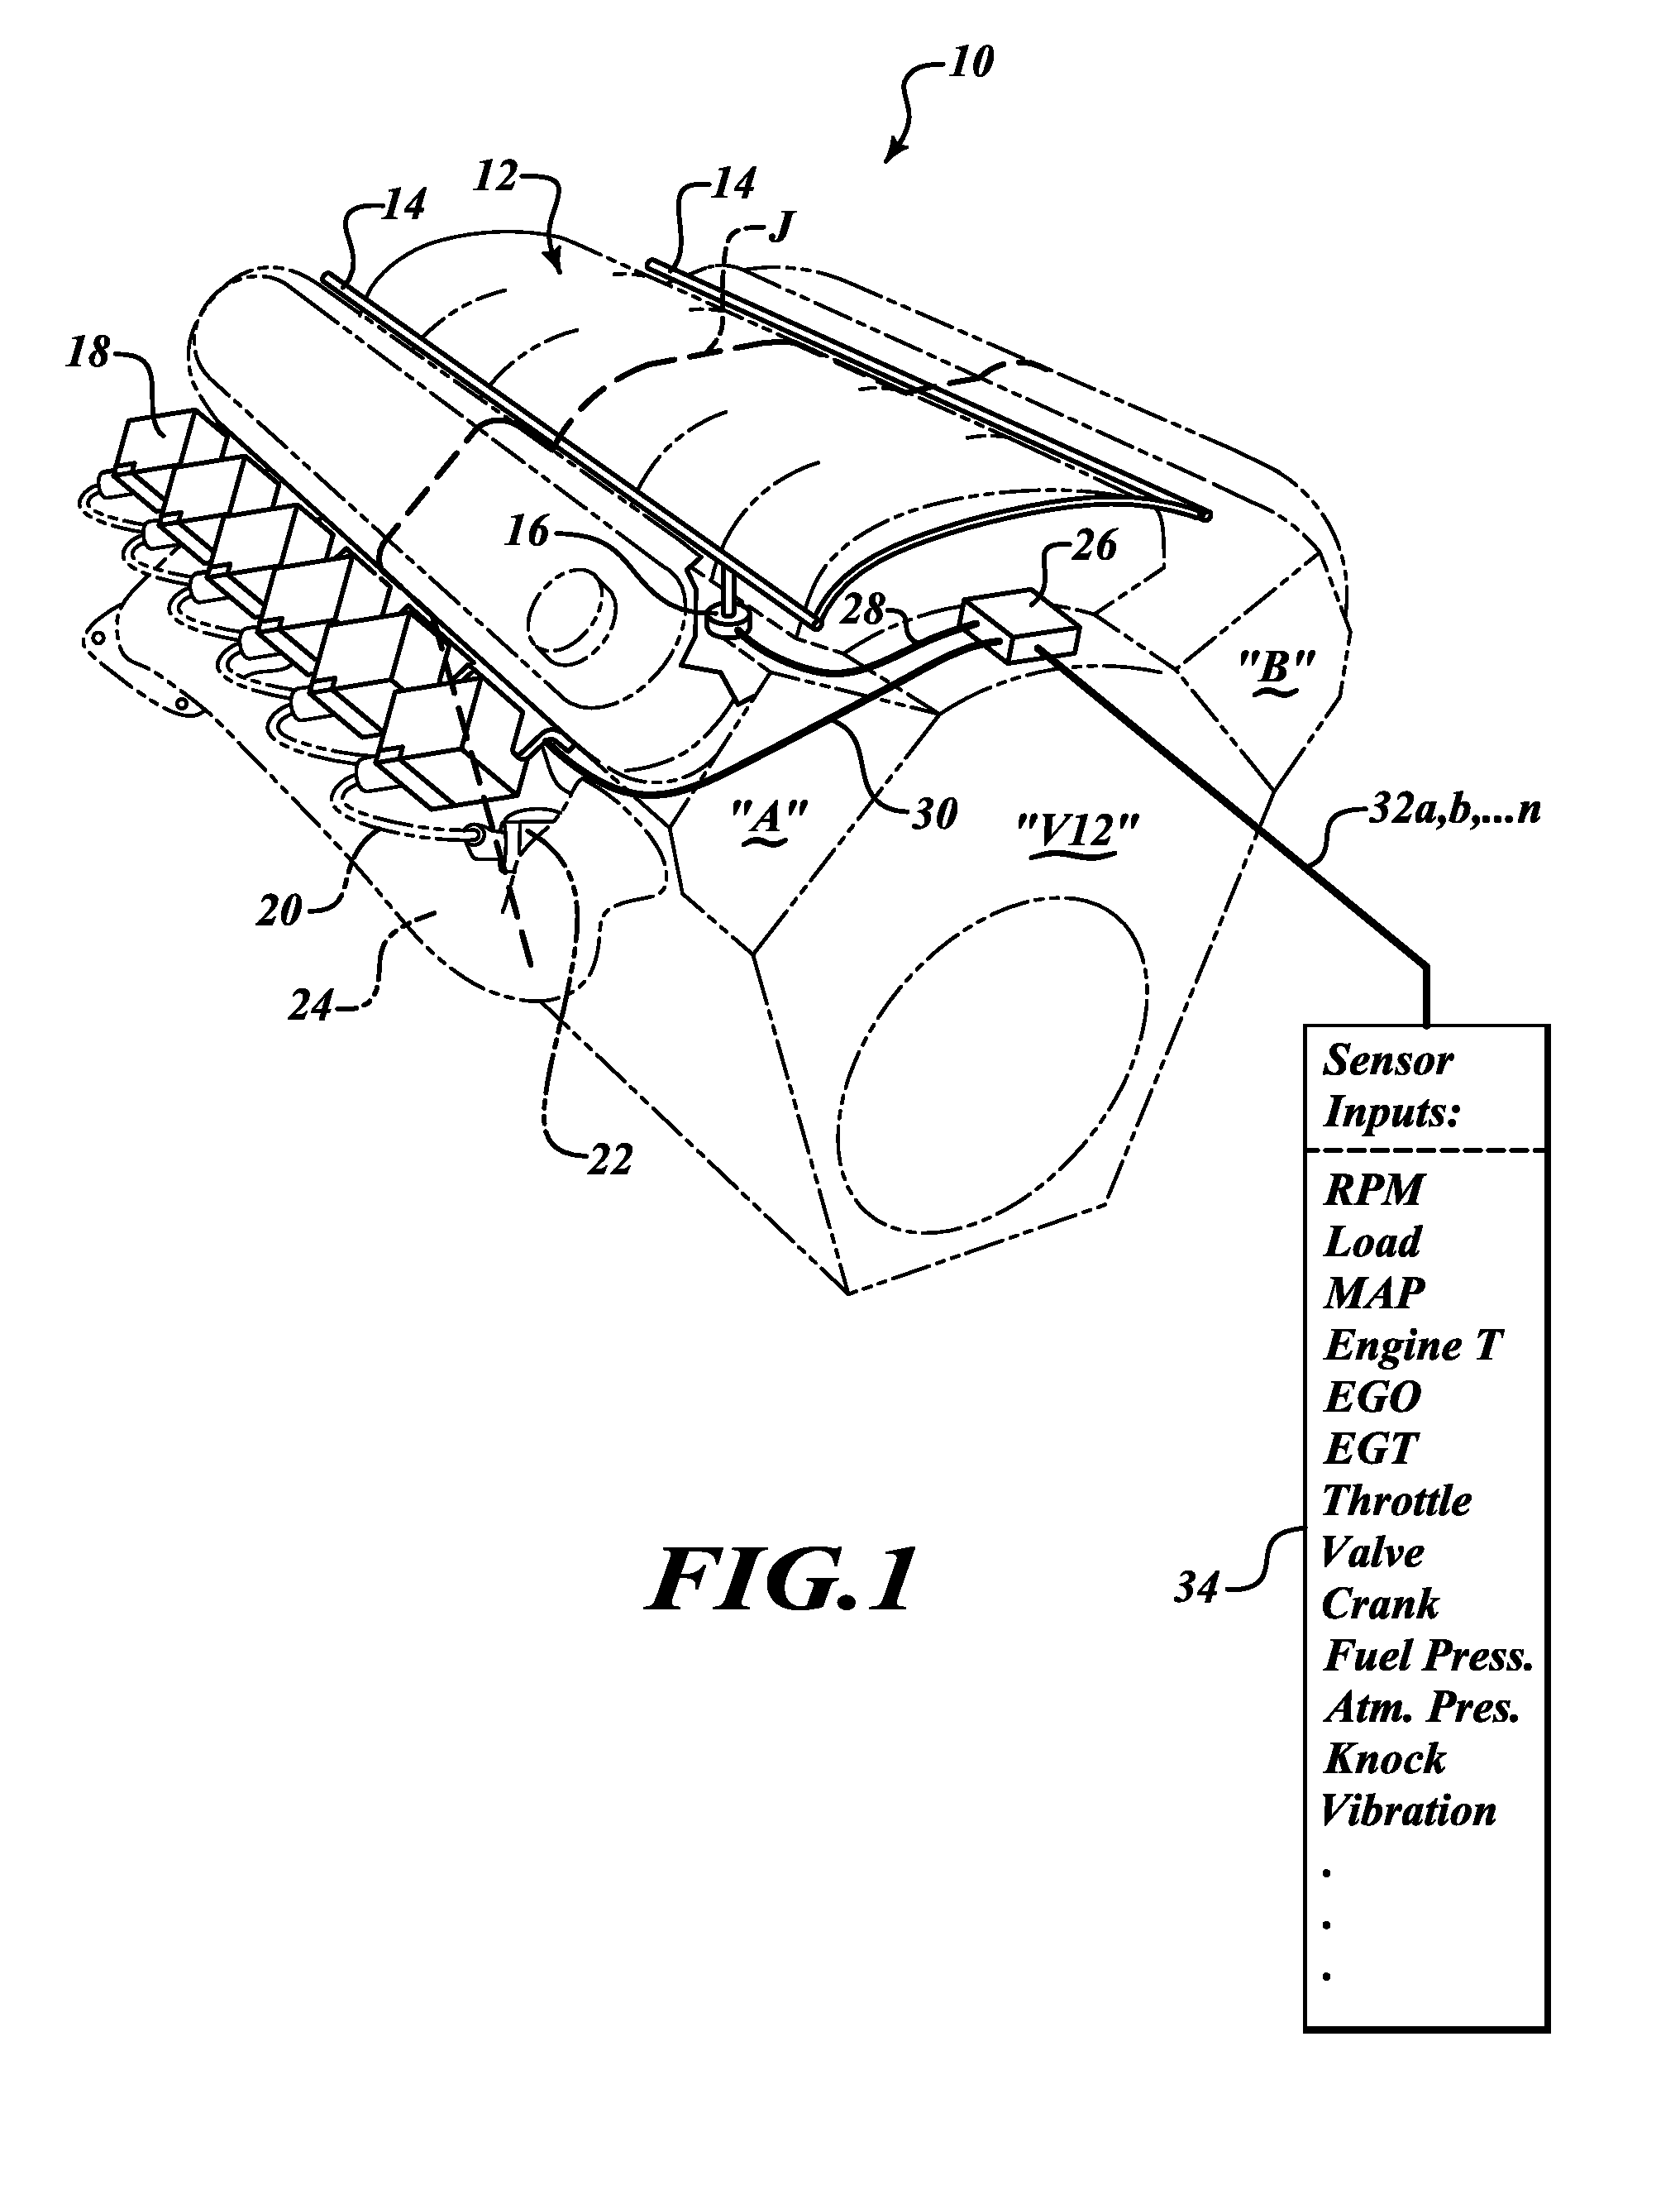 Patent drawing patent us7979193 even fire 90 v12 ic engines fueling and firing landi lpg wiring diagram